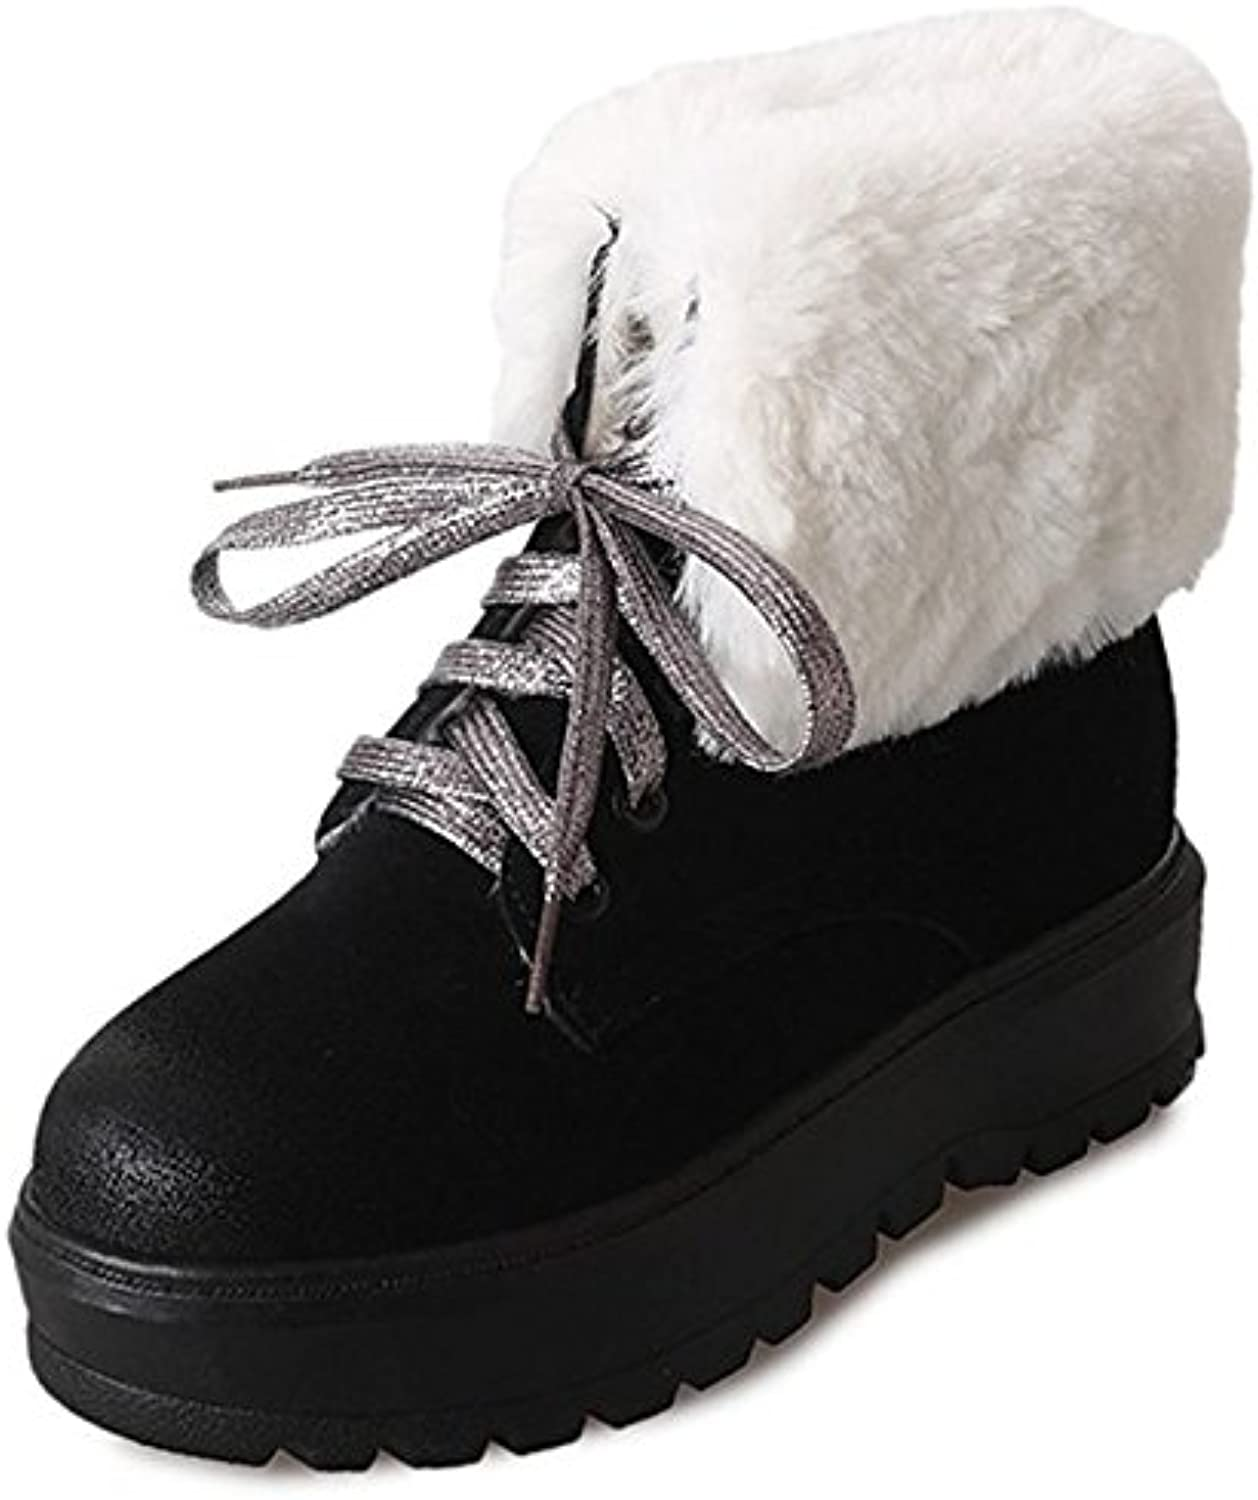 HSXZ Women's shoes PU Winter Fall Comfort Fashion Boots Combat Boots Boots Creepers Round Toe MidCalf Boots for Casual Brown Black